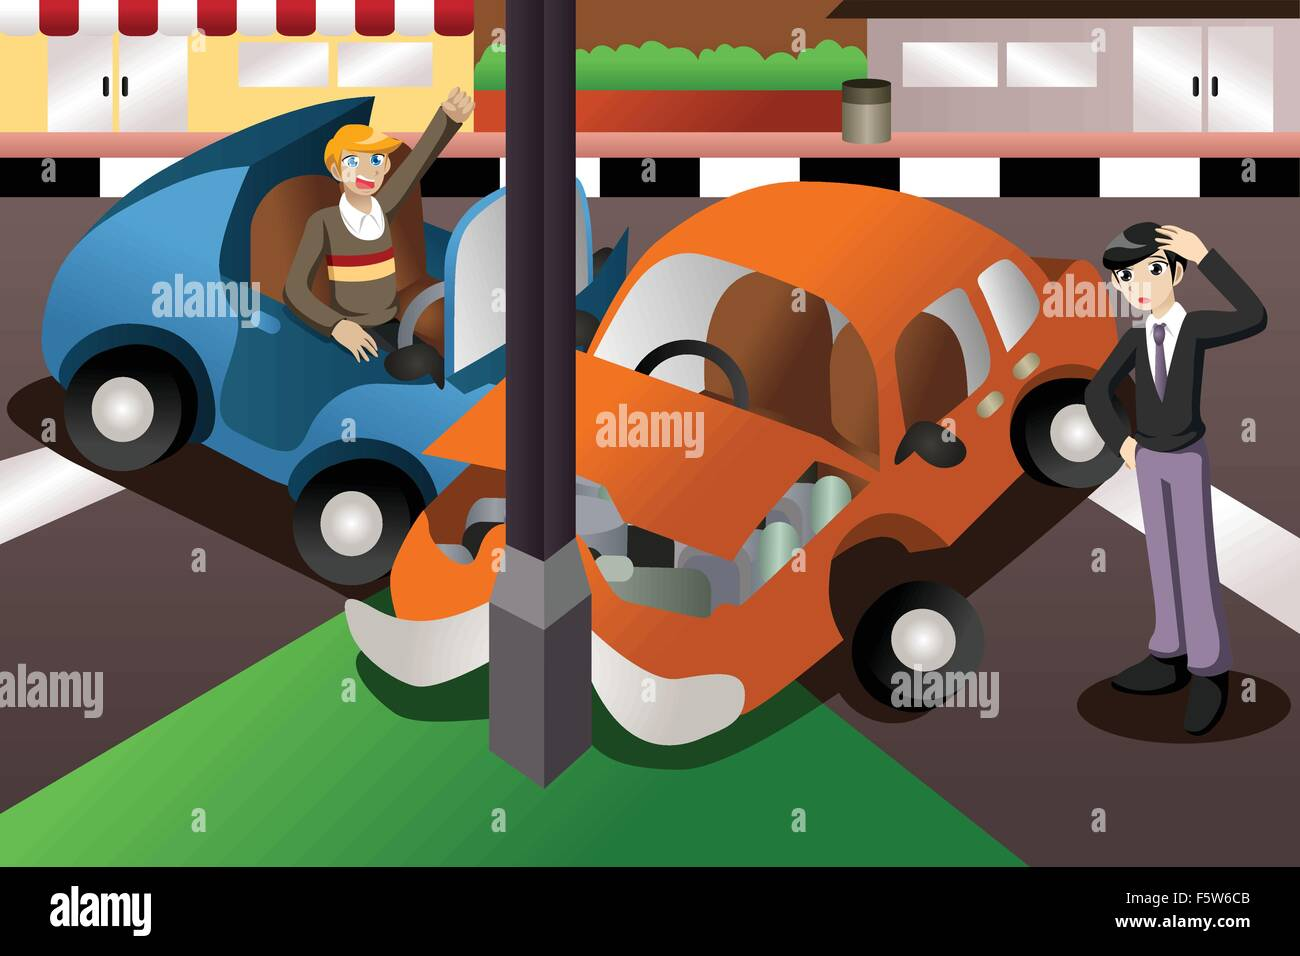 Accident Vectors Stock Photos Amp Accident Vectors Stock